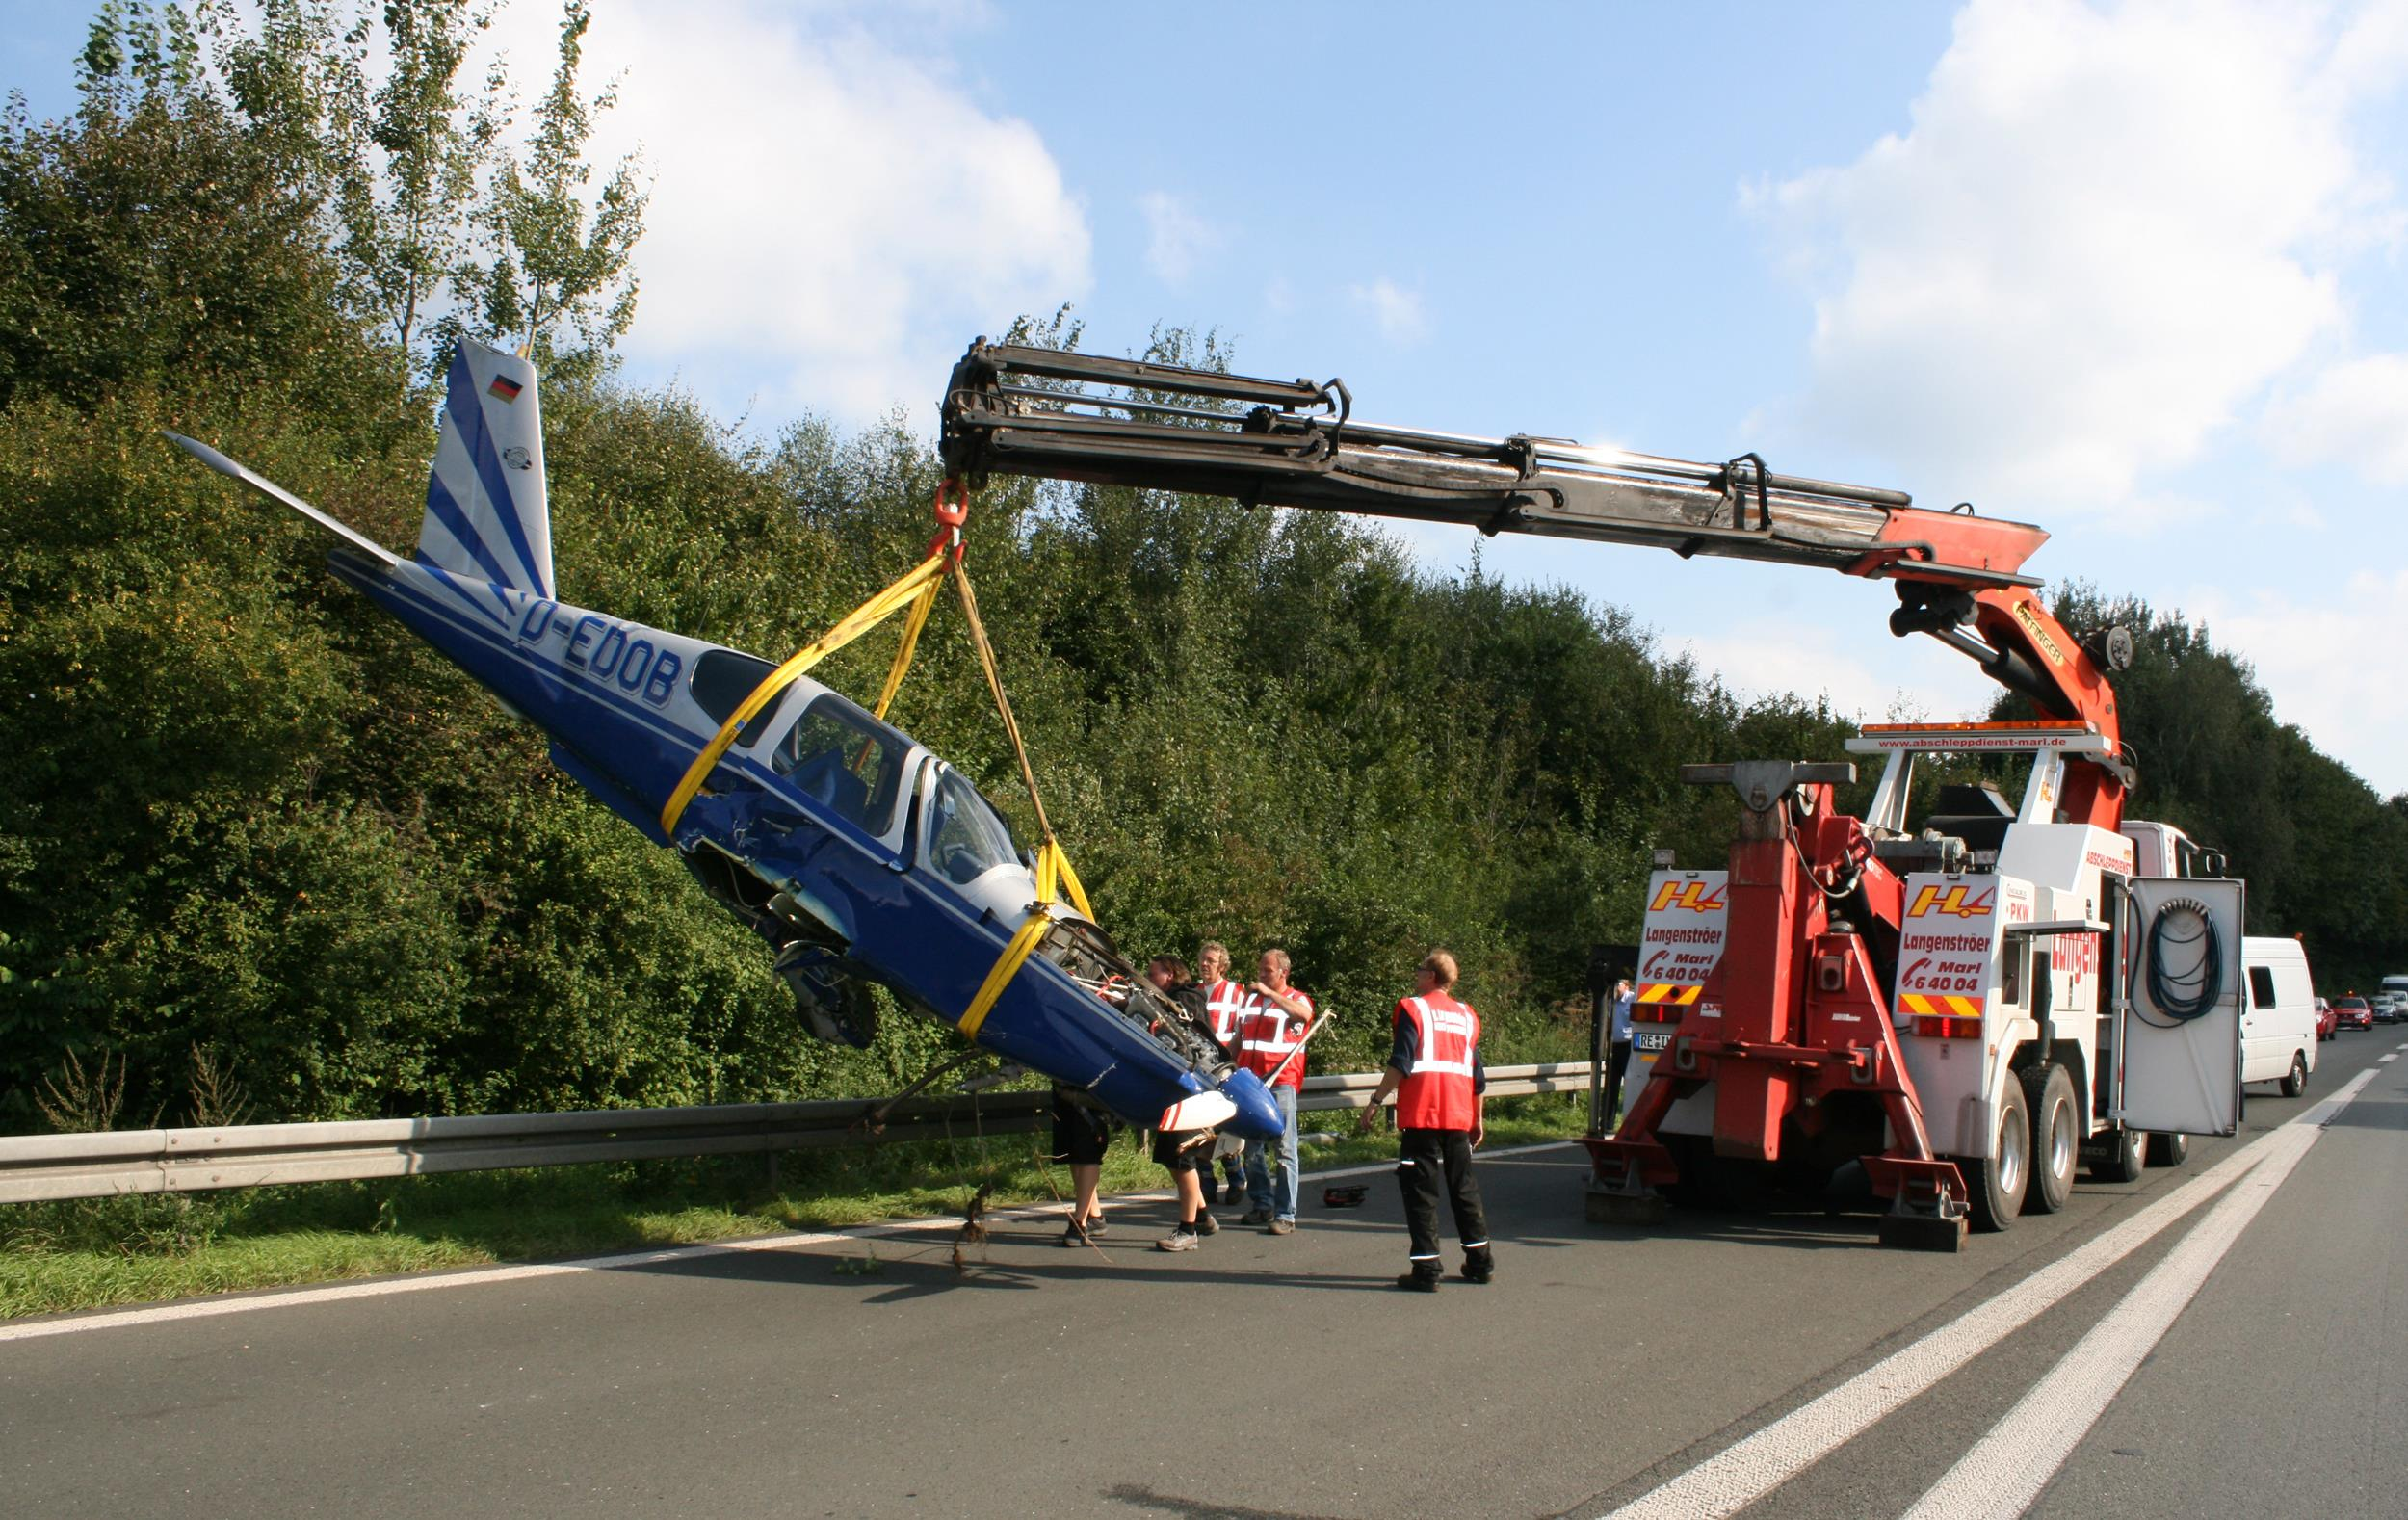 A small plane is recovered after landing beside the A43 Autobahn in northern Germany.